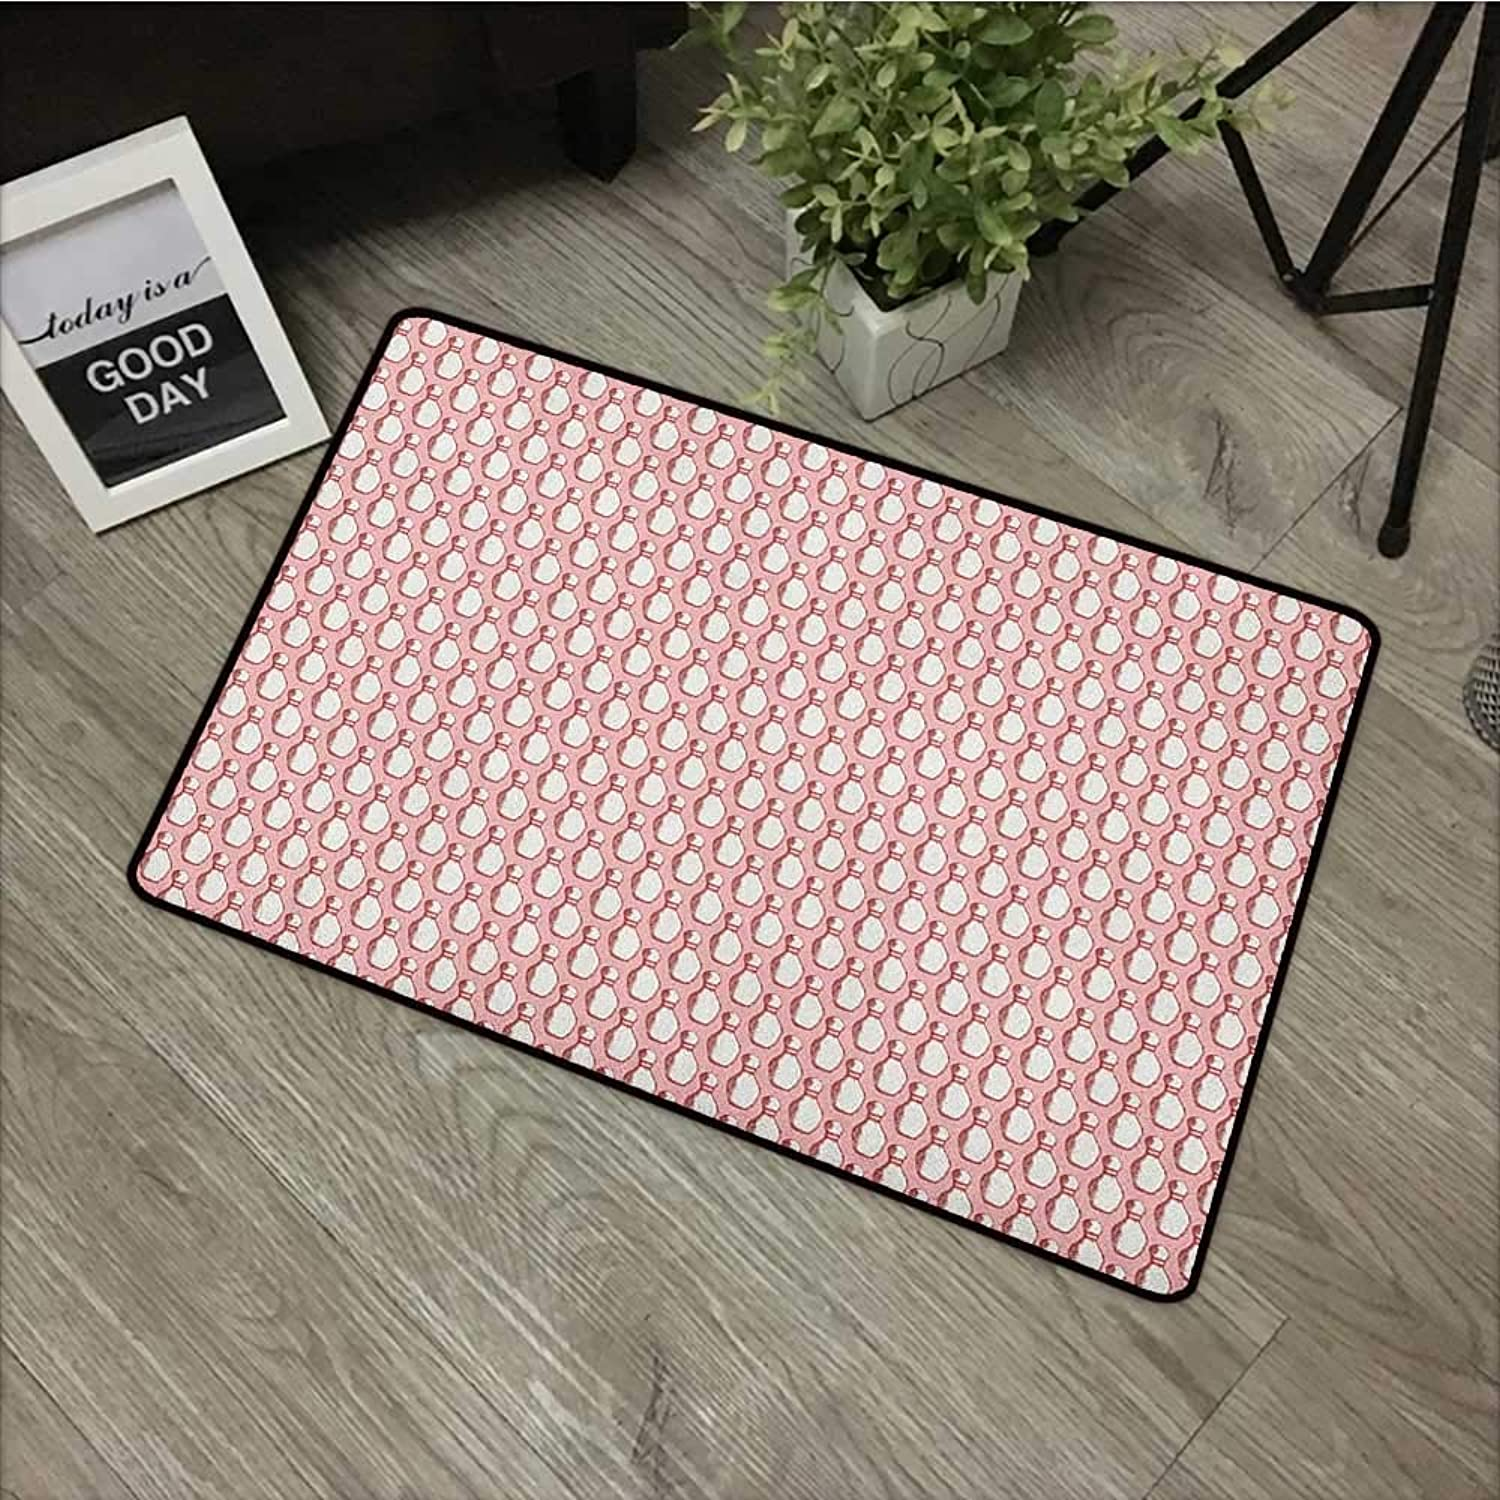 Bathroom Door mat W35 x L59 INCH Bowling,Sketchy Pins in Vintage Style on Pinkish Backdrop Sports Leisure Time Activity, Coral Cream Non-Slip, with Non-Slip Backing,Non-Slip Door Mat Carpet